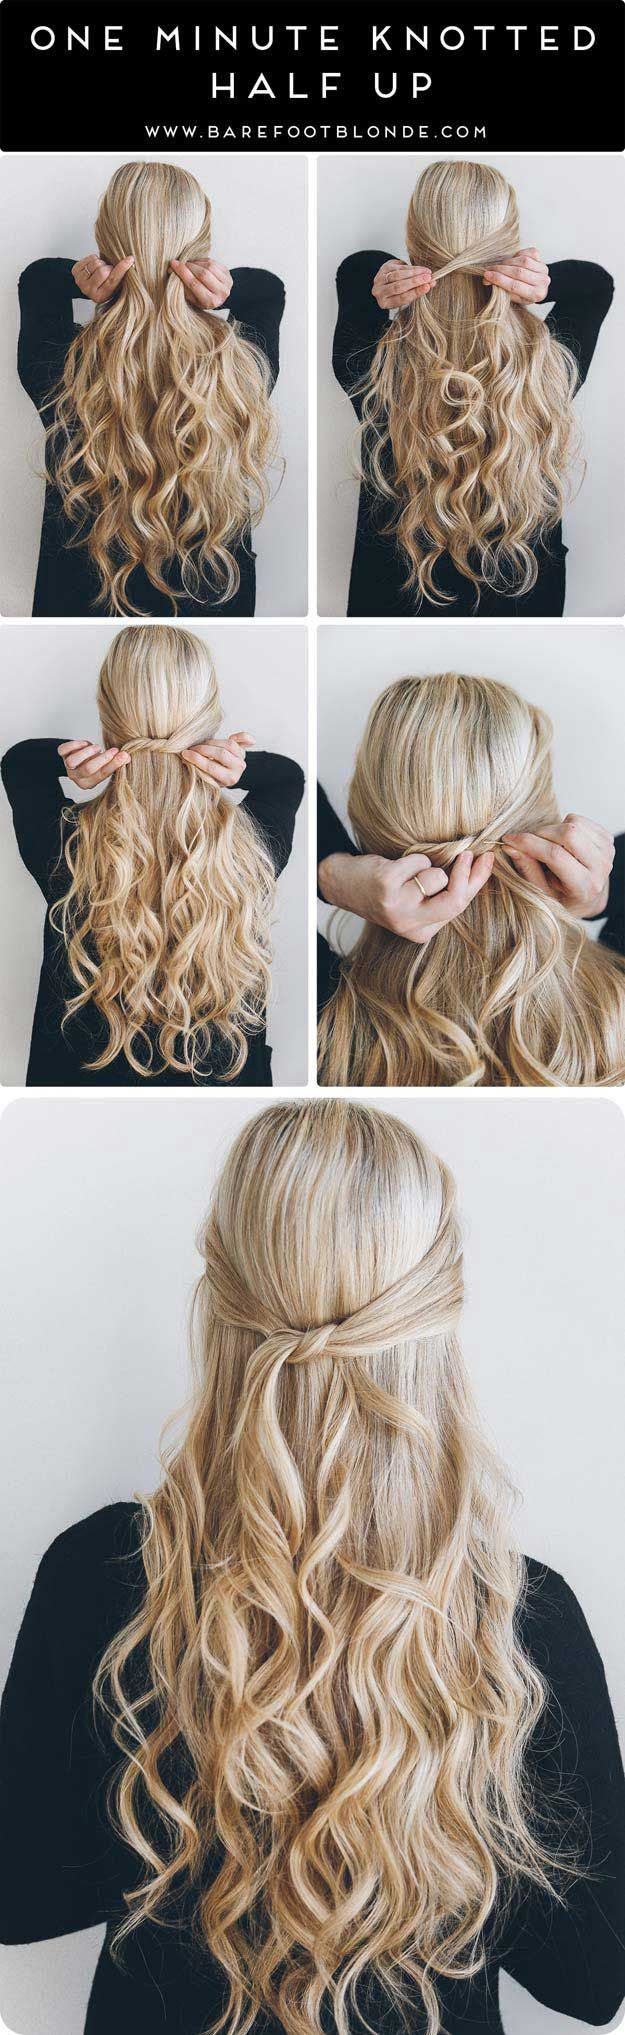 cocktail hair styles best 25 half ponytail ideas on half up half 7461